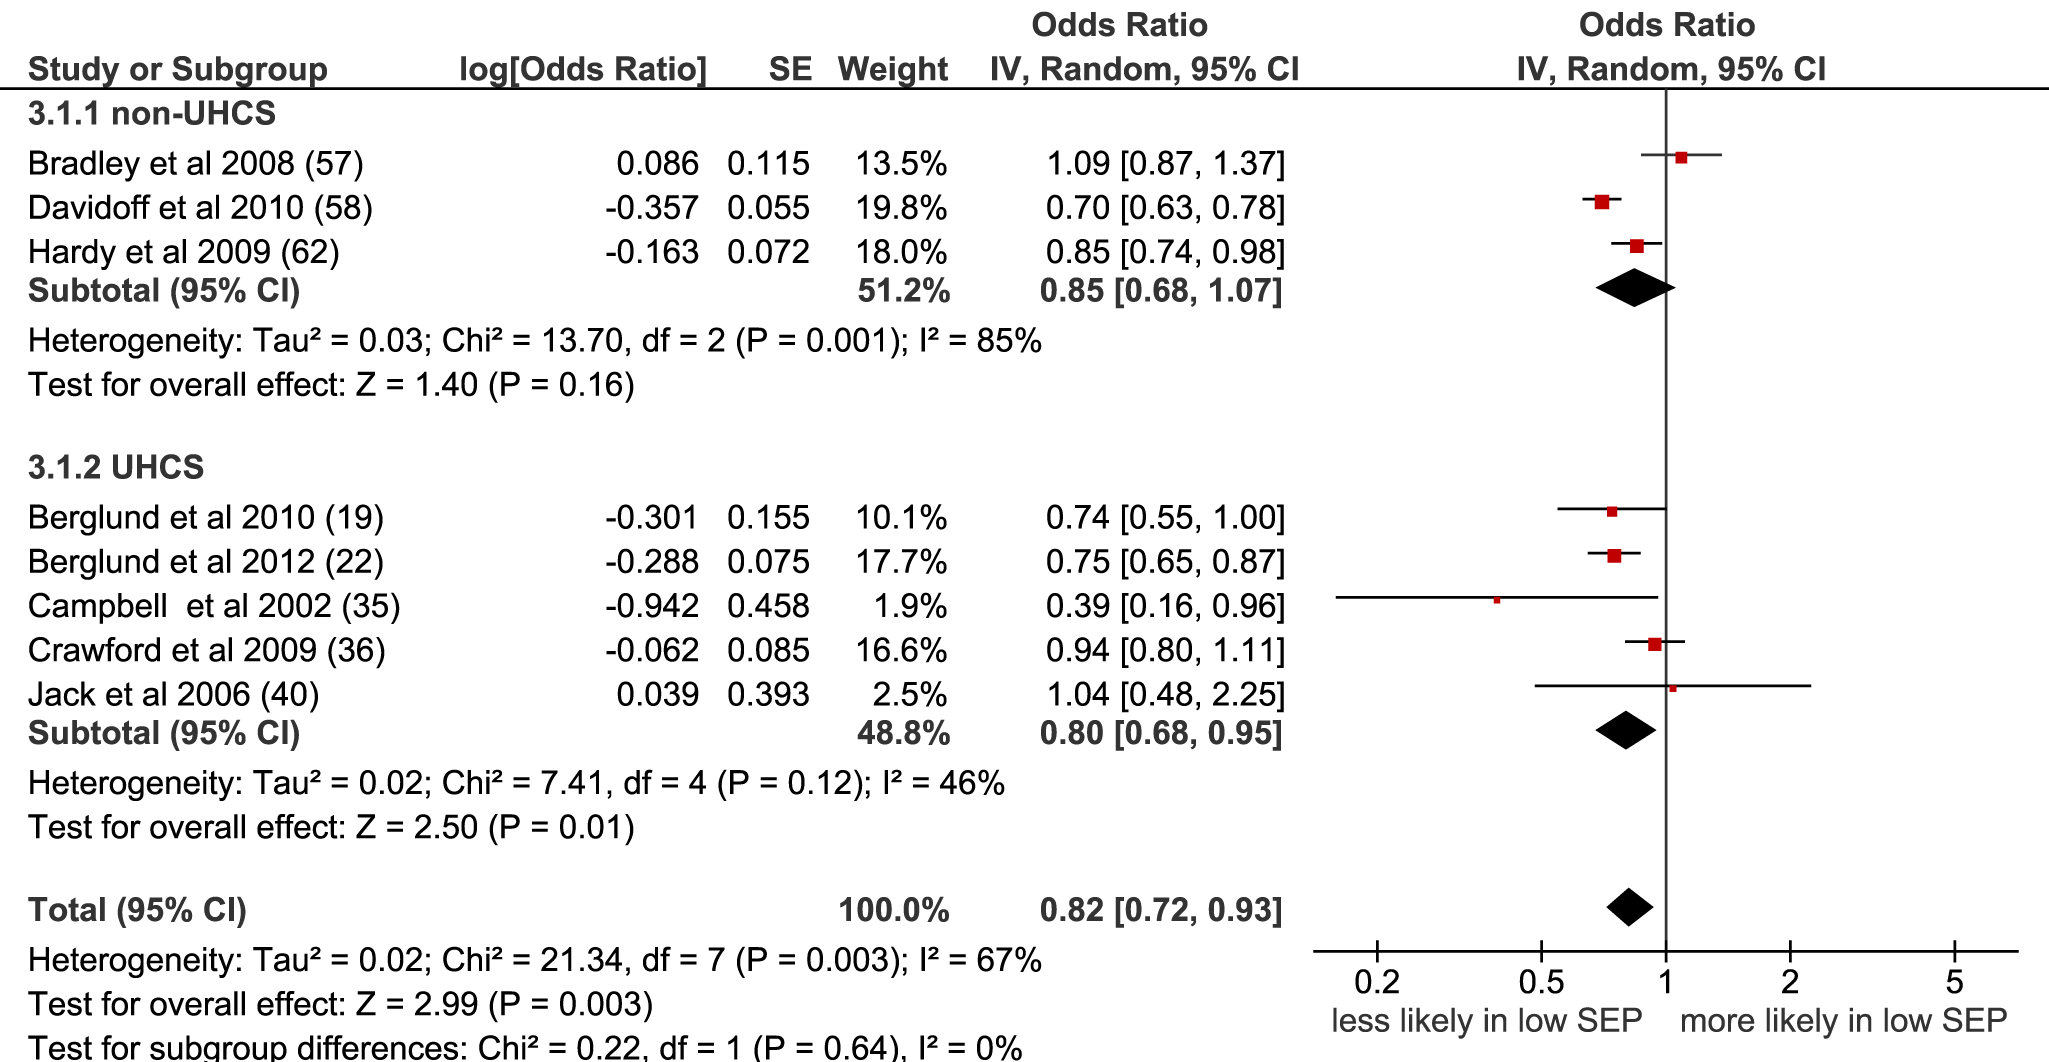 Meta-analysis of odds of receipt of chemotherapy in low versus high SEP.